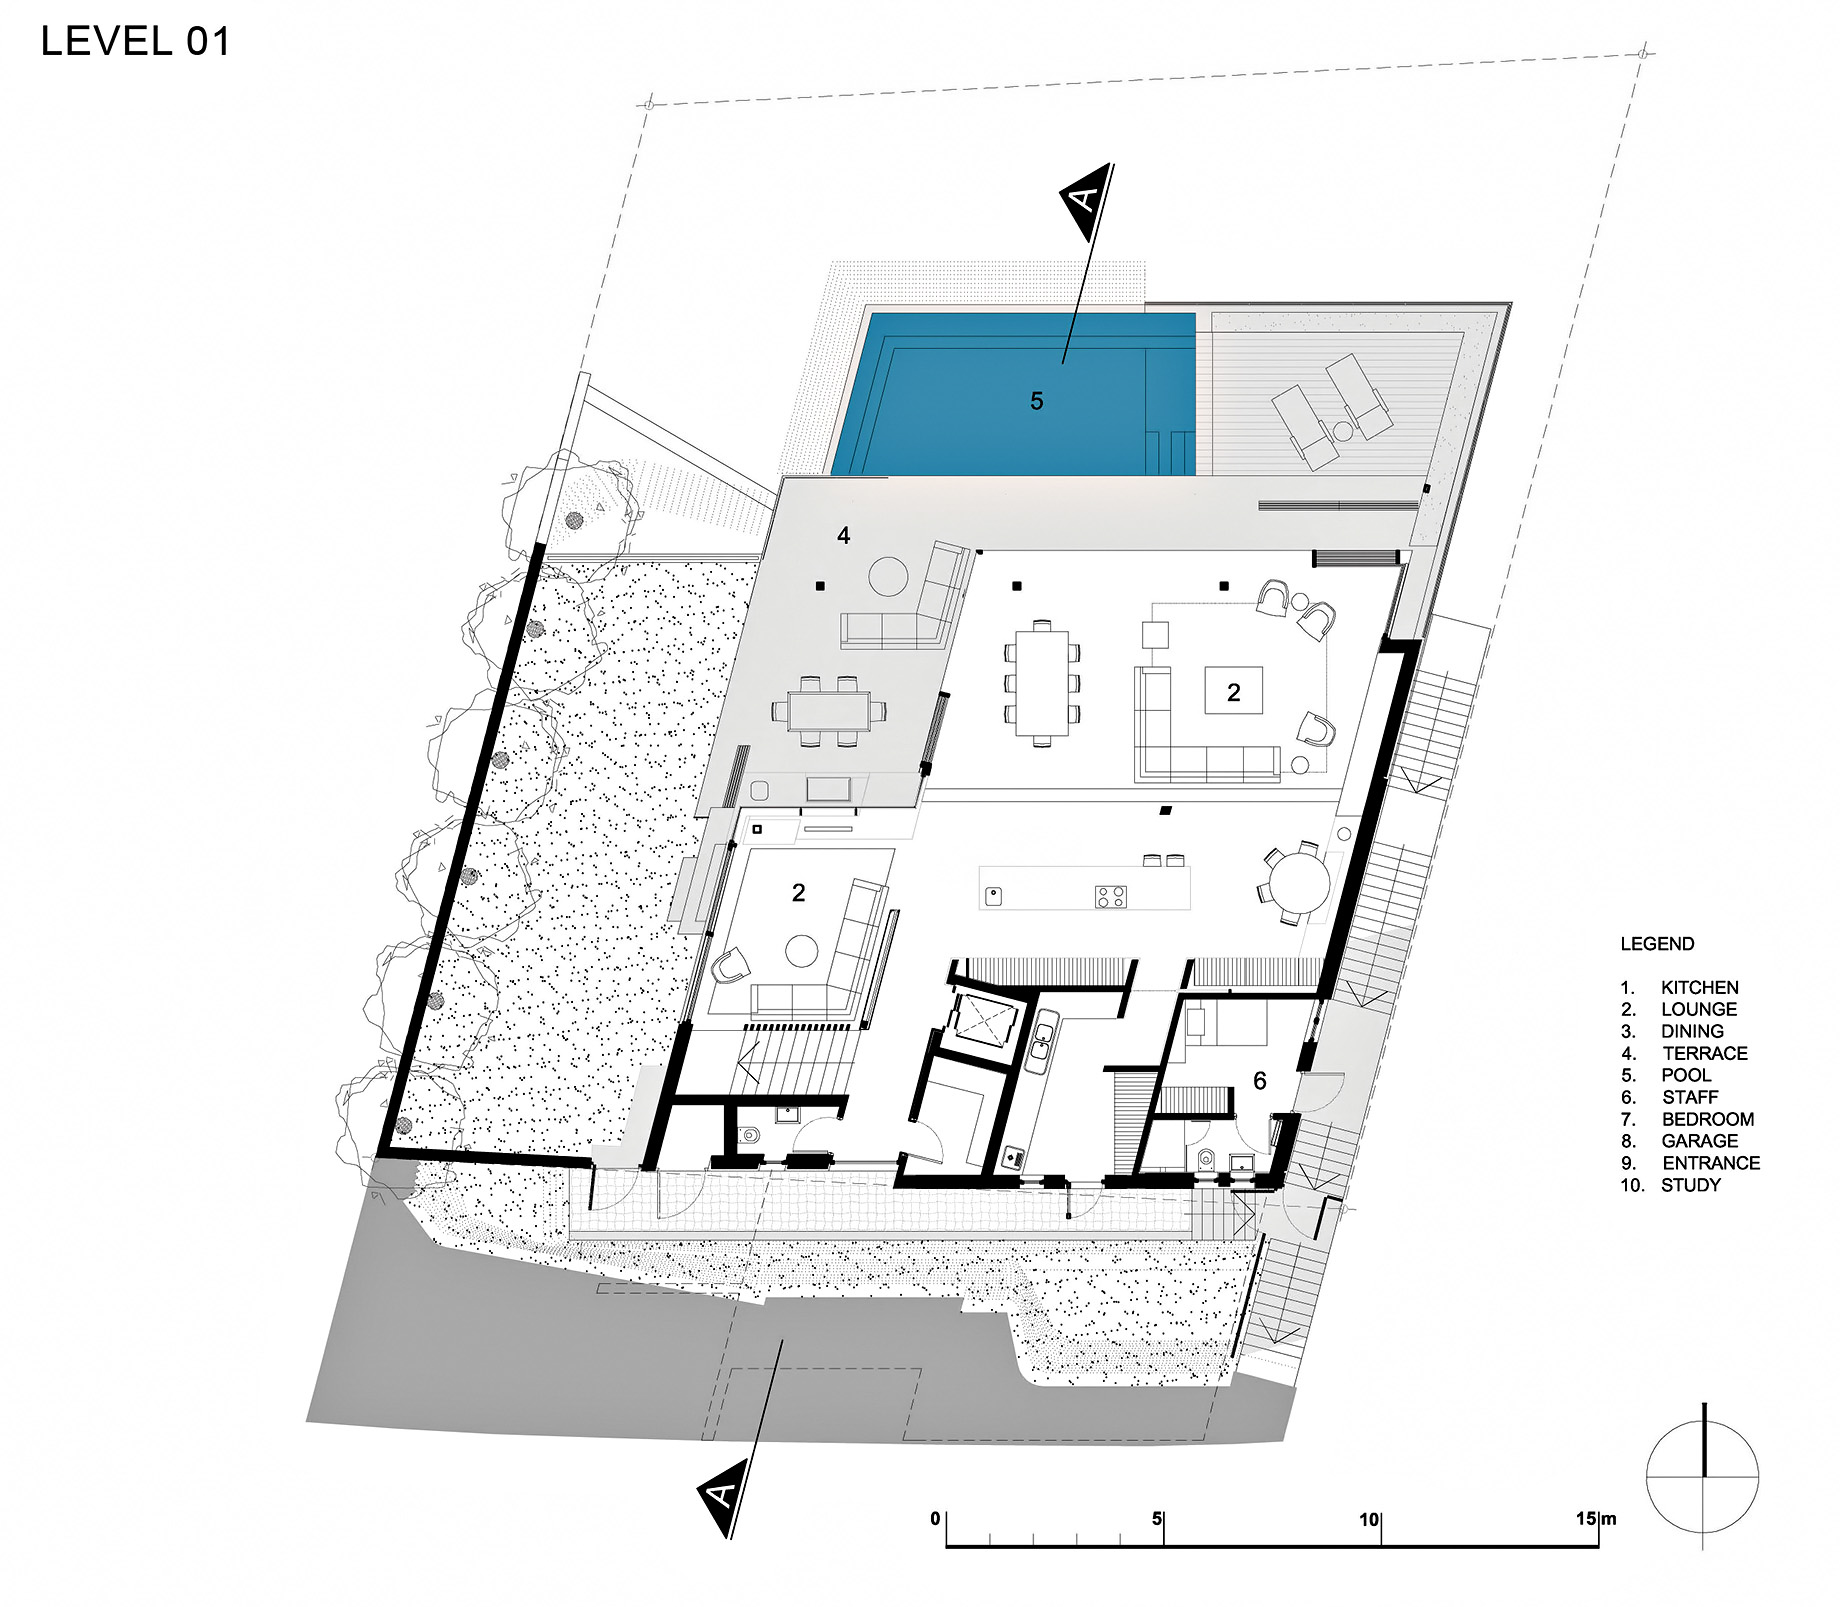 Floor Plans - Level 1 - Head Road 1816 - Fresnaye, Cape Town, Western Cape, South Africa